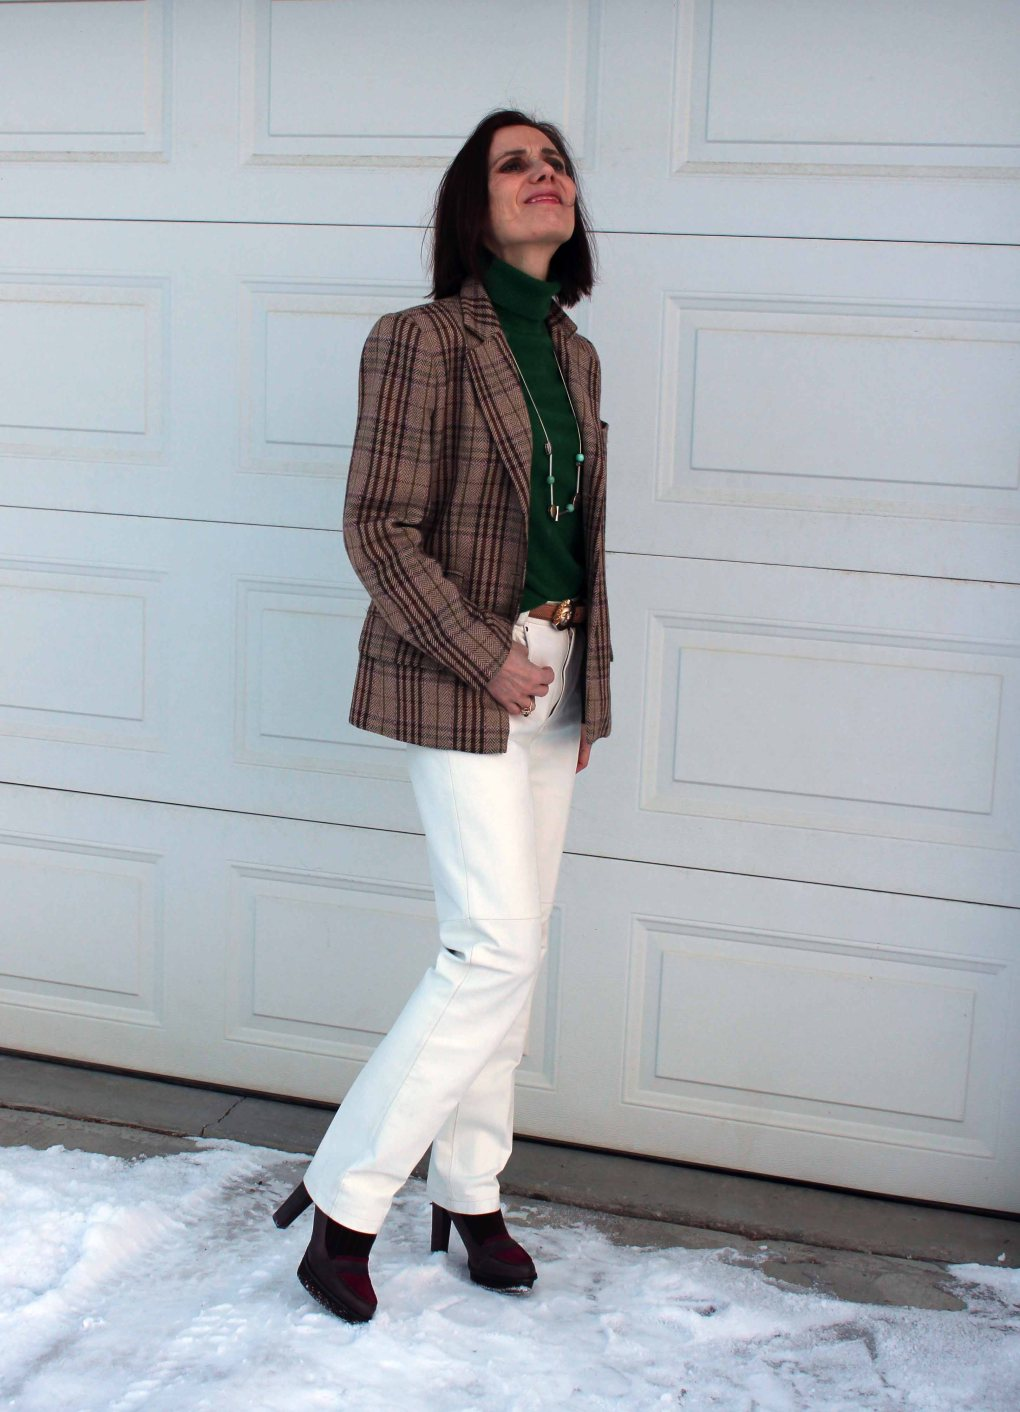 #advancedfashion mature woman in casual posh work outfit with white pants and tartan blazer and green turtleneck cashmere sweater